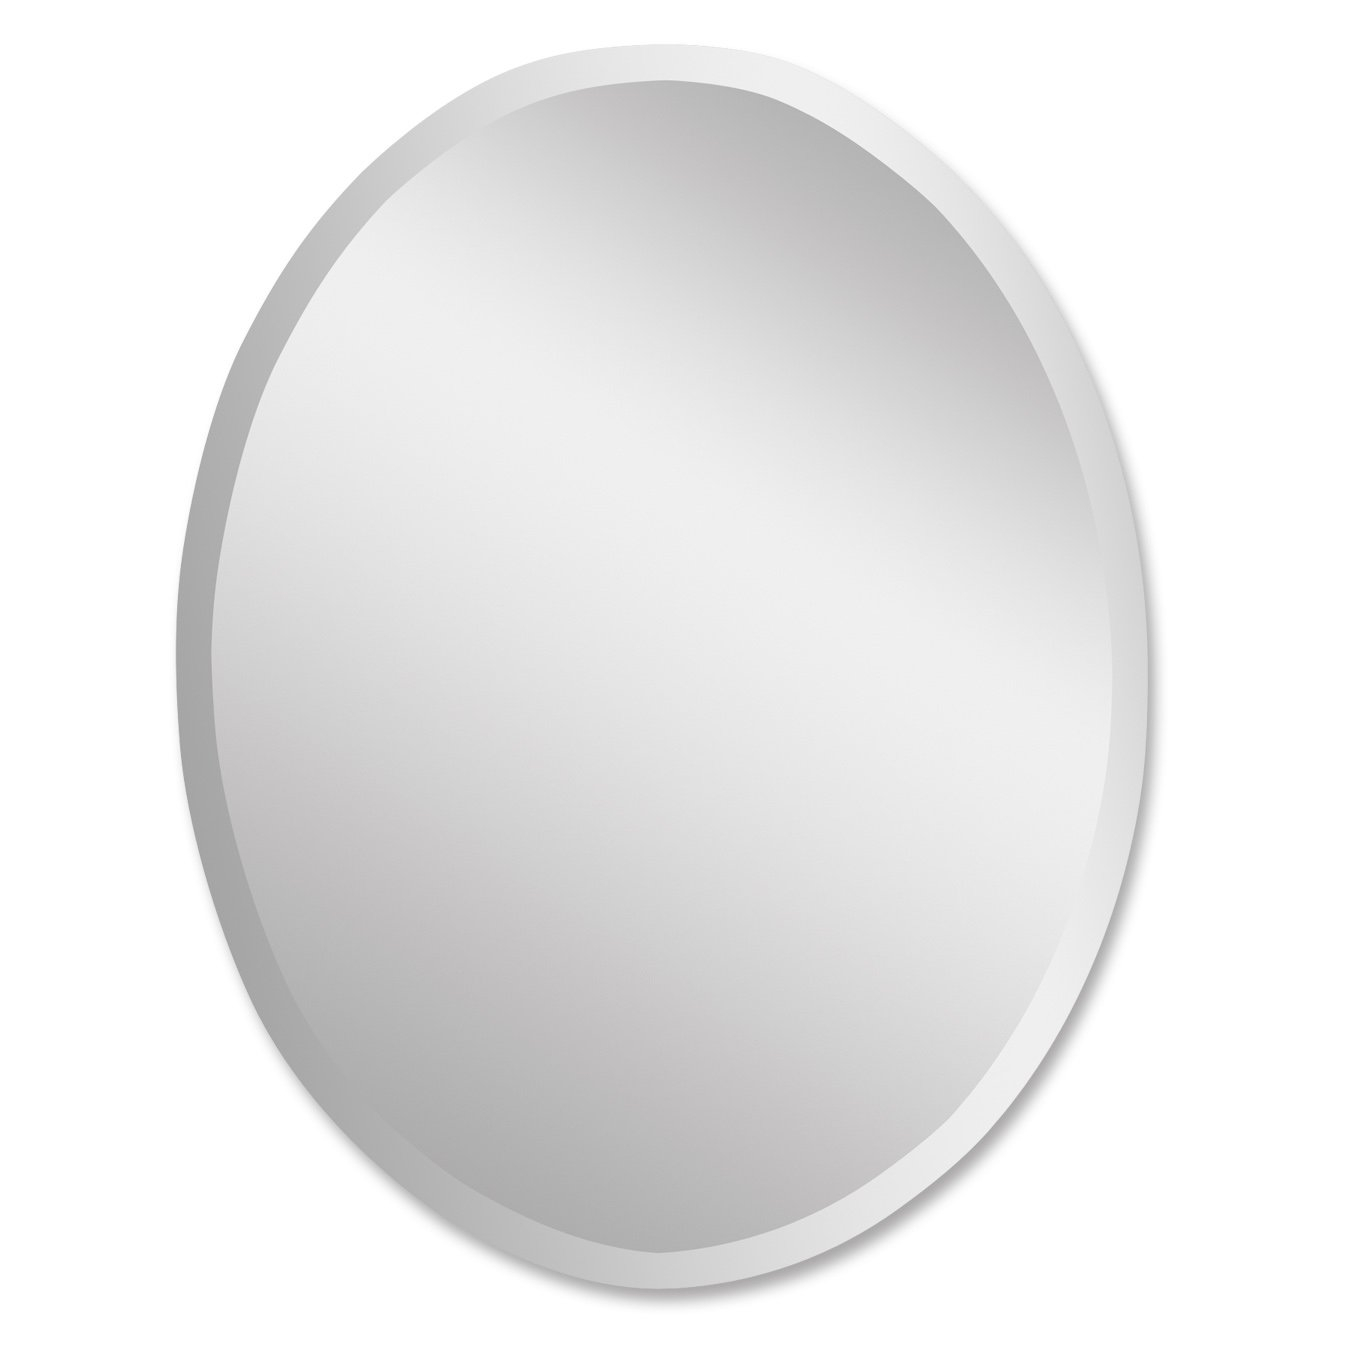 Red Barrel Studio Frameless Vanity Oval Wall Mirror Reviews In White Oval Wall Mirror (Image 9 of 15)